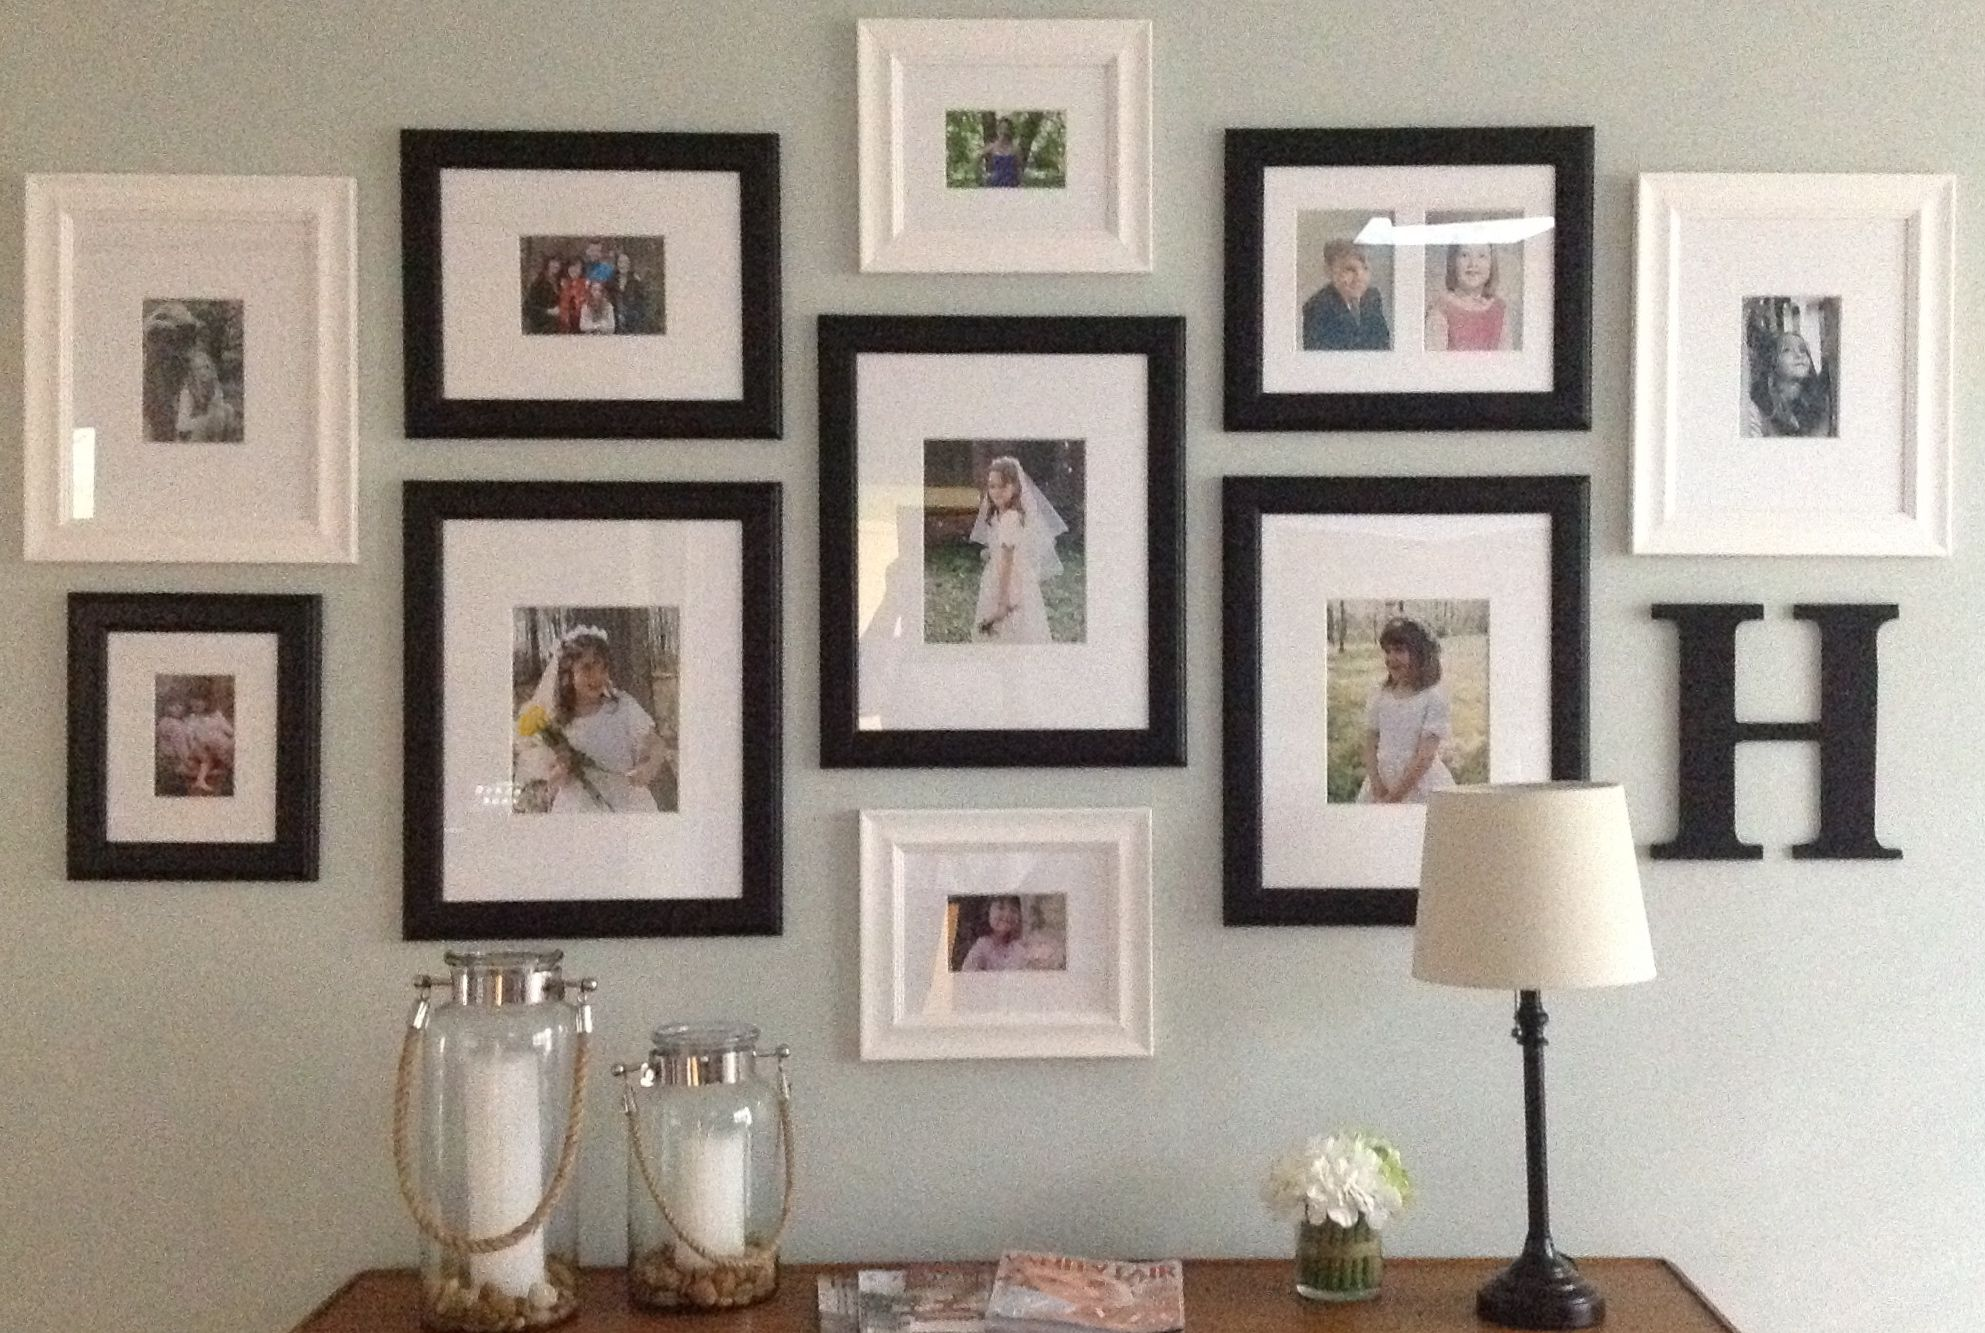 Mixing Black And White Gallery Frames Frames On Wall Wall Decor